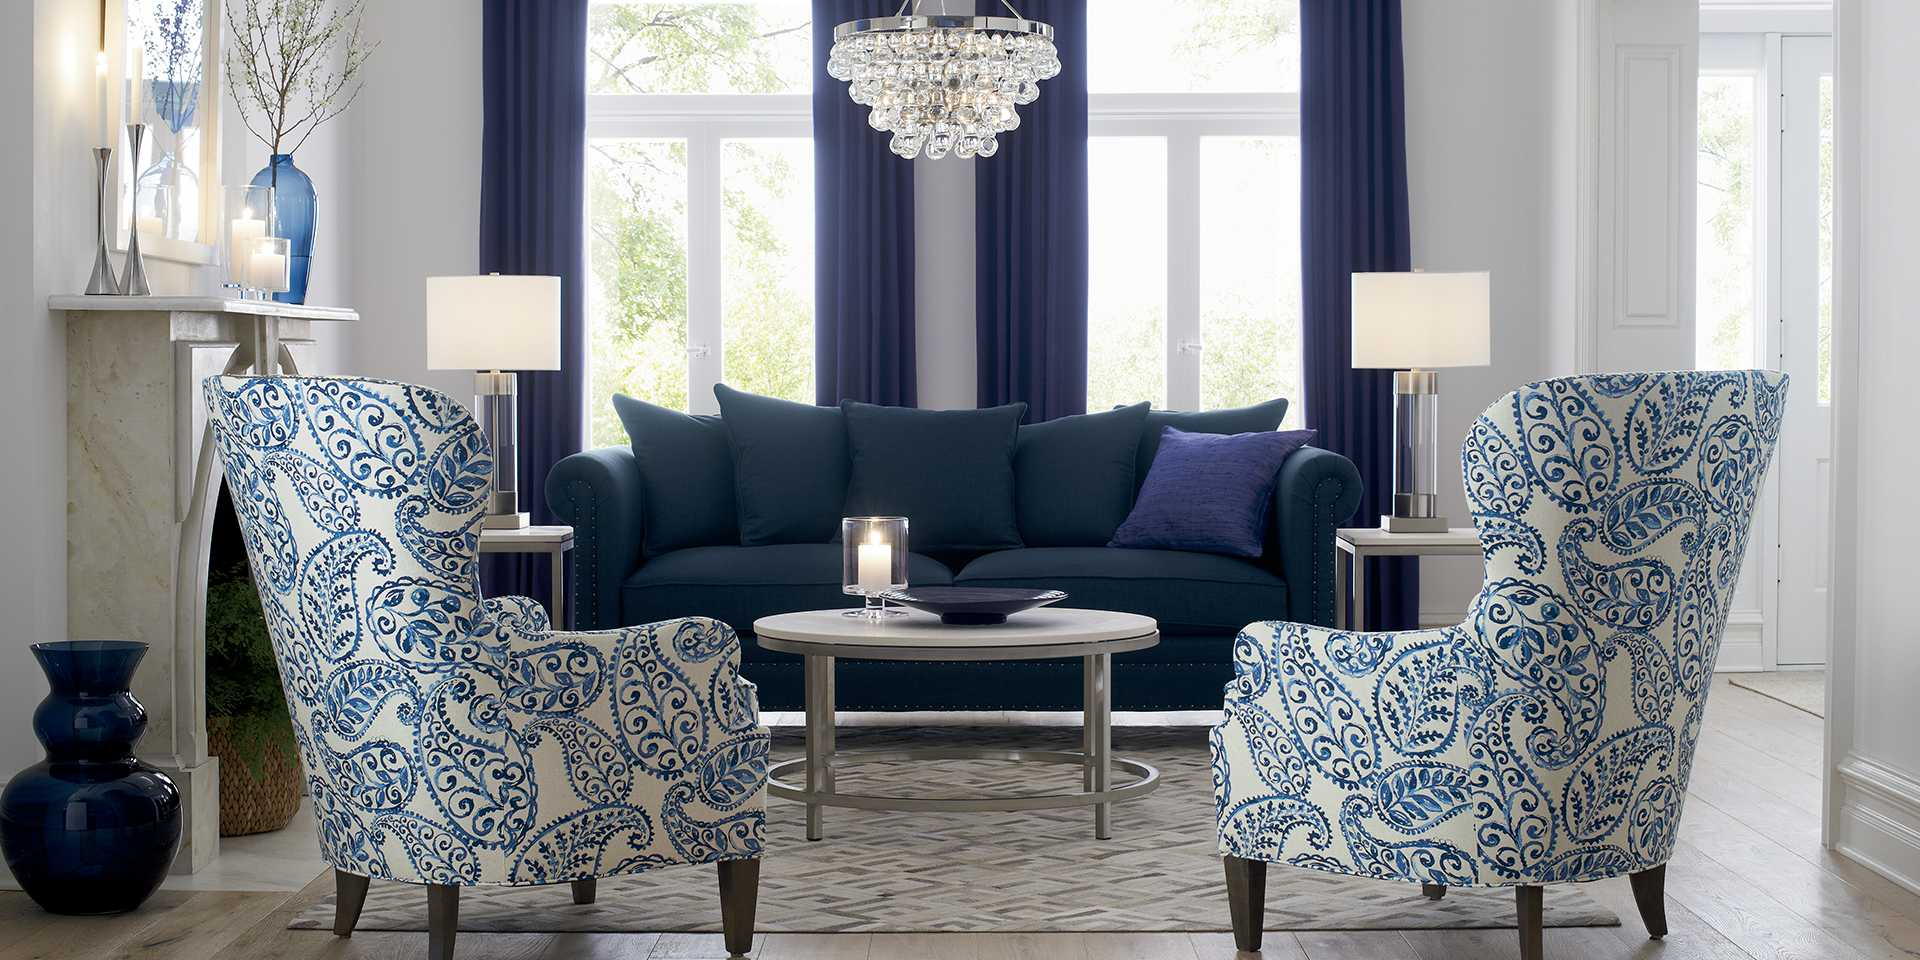 crate and barrel living rooms. Awesome Crate And Barrel Living Room Ideas Images New House Design Sets  Conceptstructuresllc com